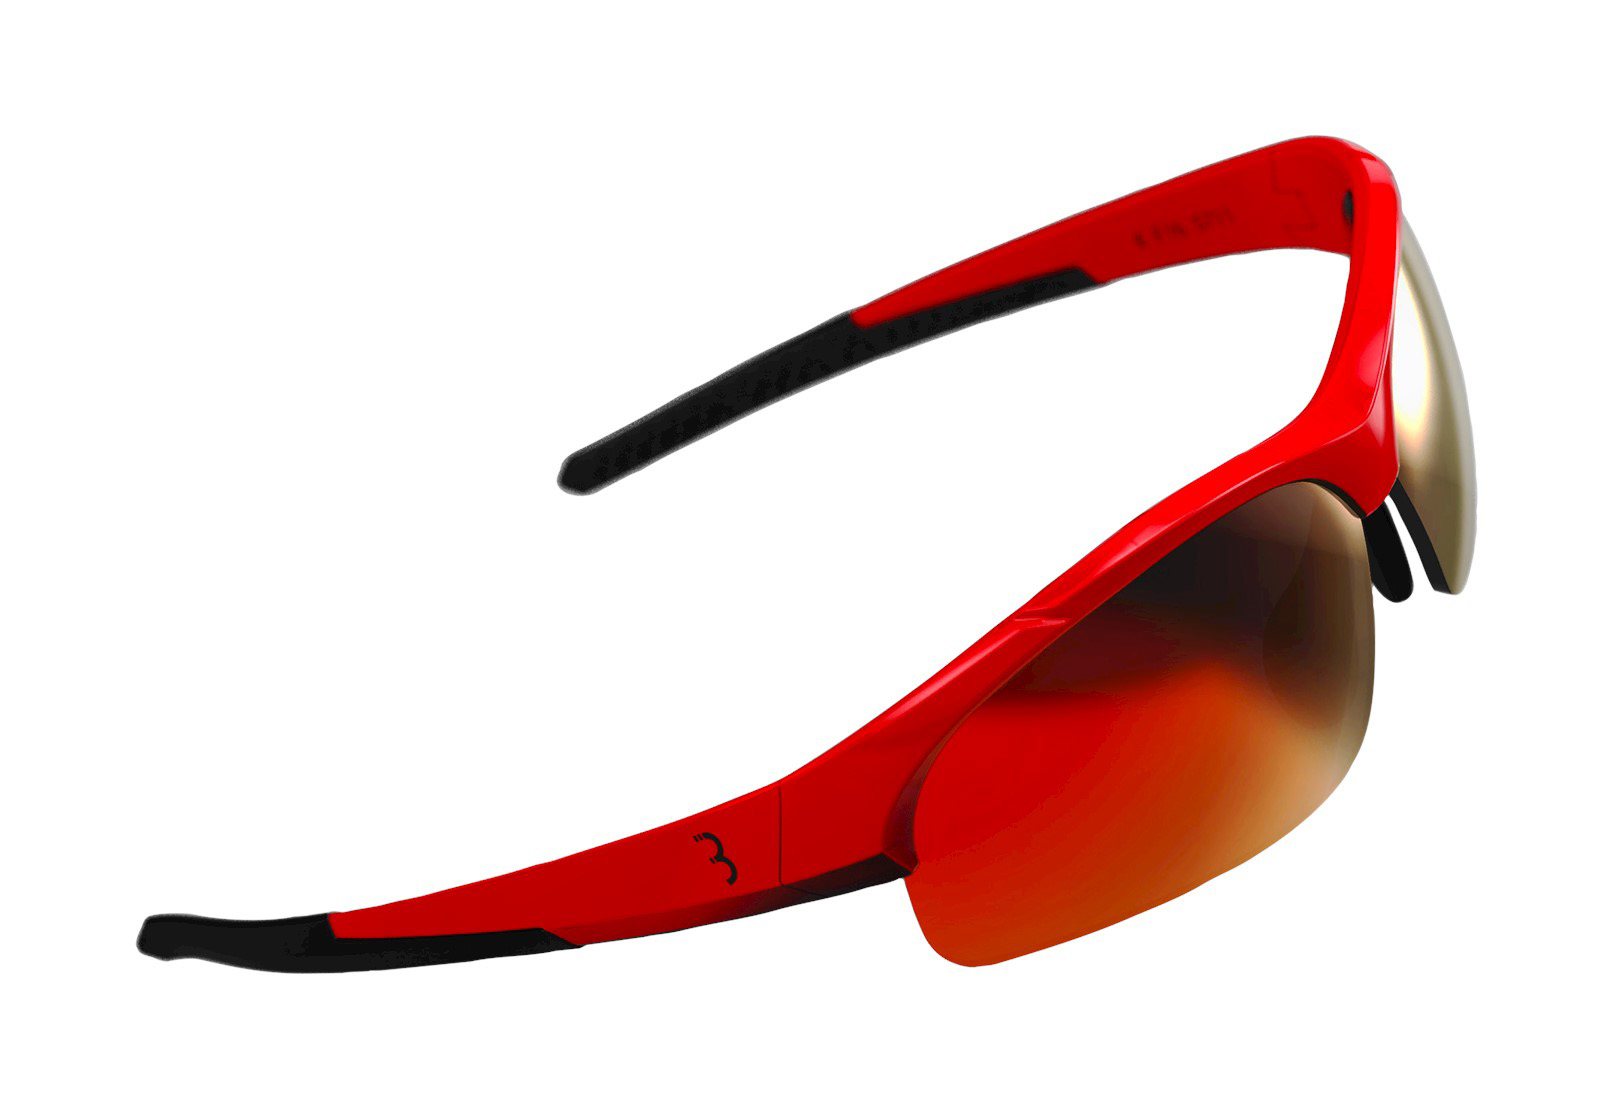 Bbb-Bsg-48-Impress-Small-Red-Red-Lens